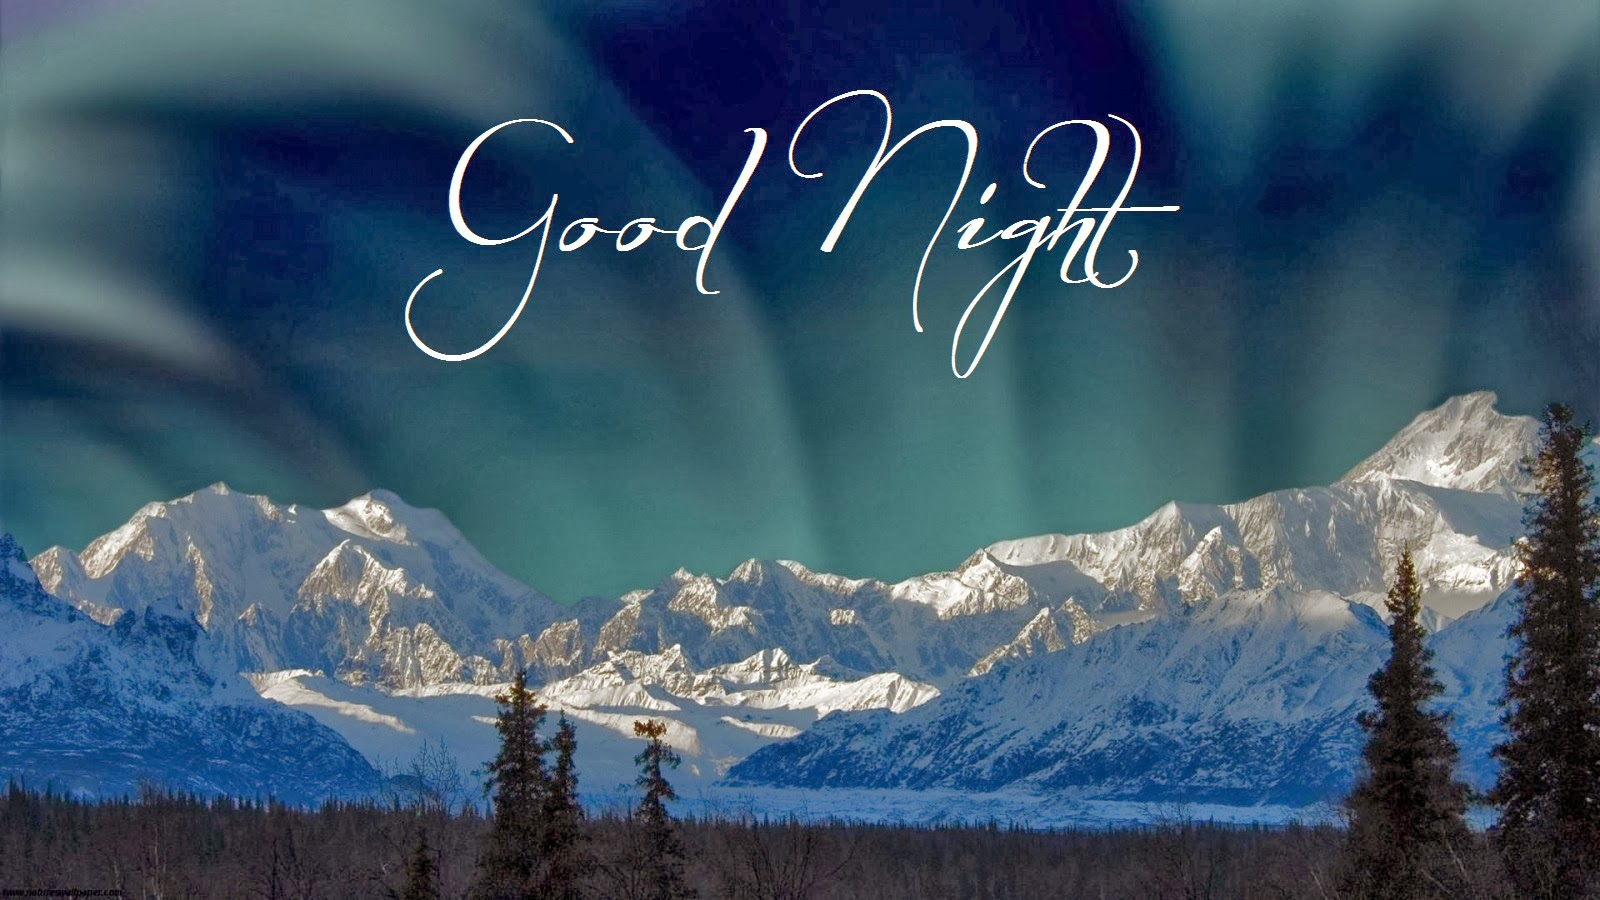 Good Night Wishes Hd Wallpapers